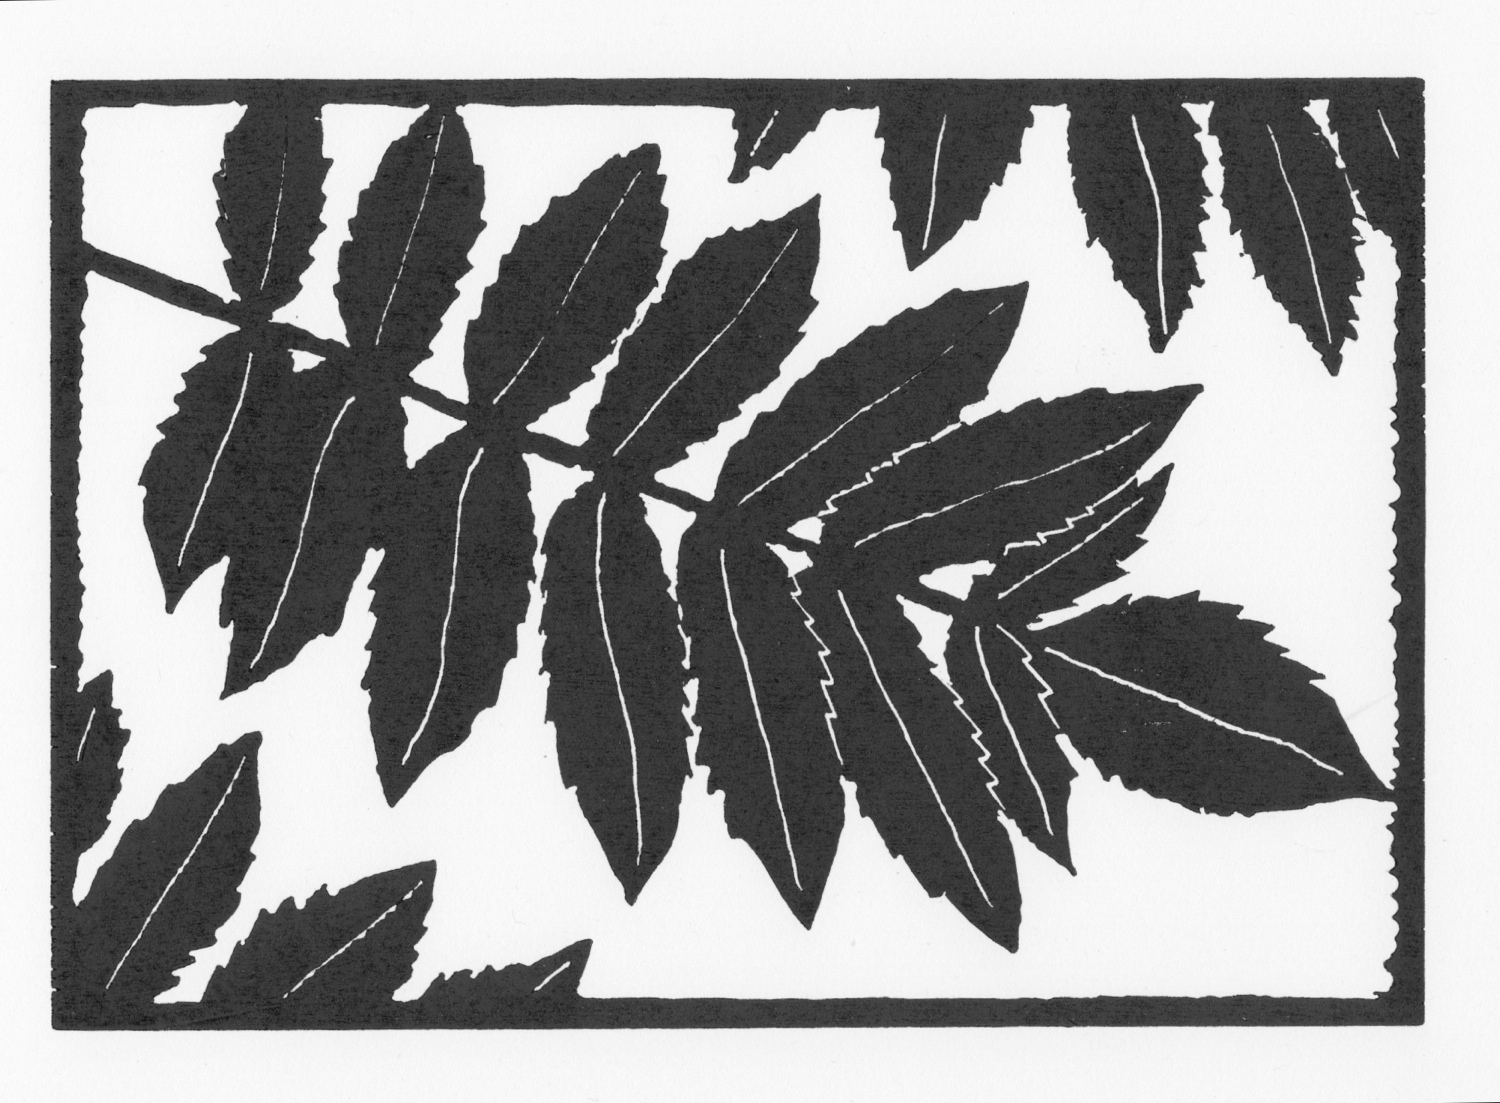 Sumac Leaves • © Fred Montague  $48 • image 8 x 5.5 • mat 14 x 11  Edition size: 88 • status: available